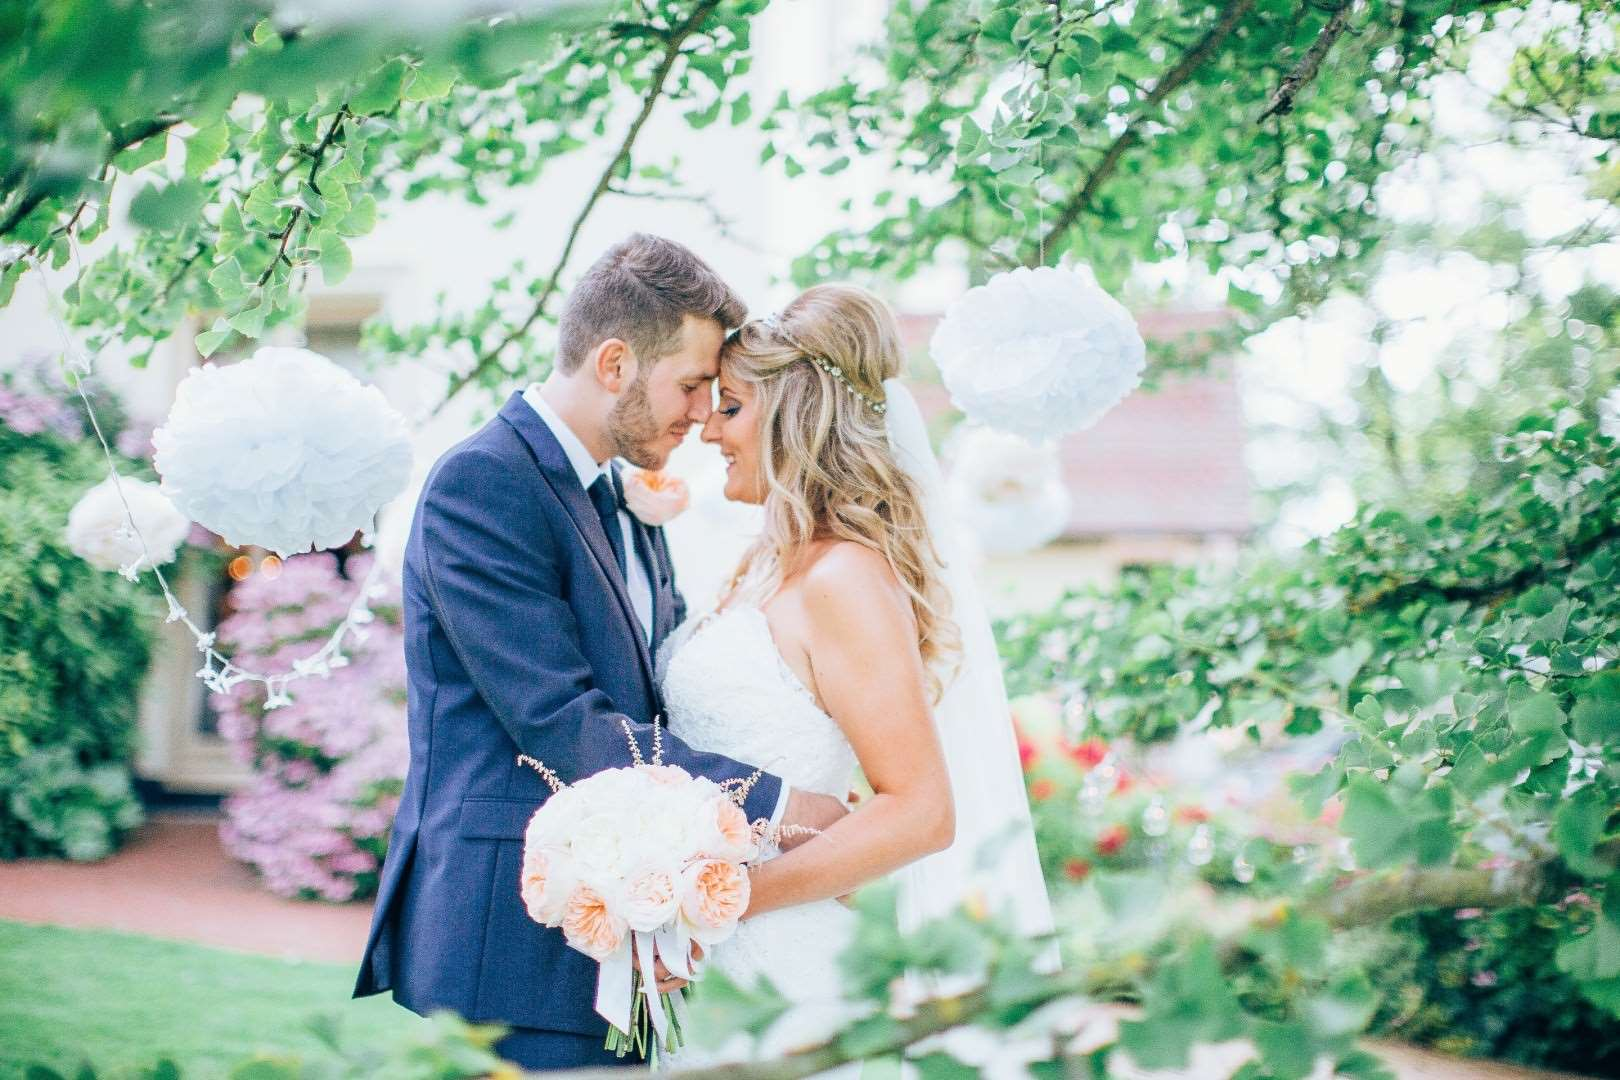 Wedding Open Evening, Maison Talbooth – Wednesday 29th March